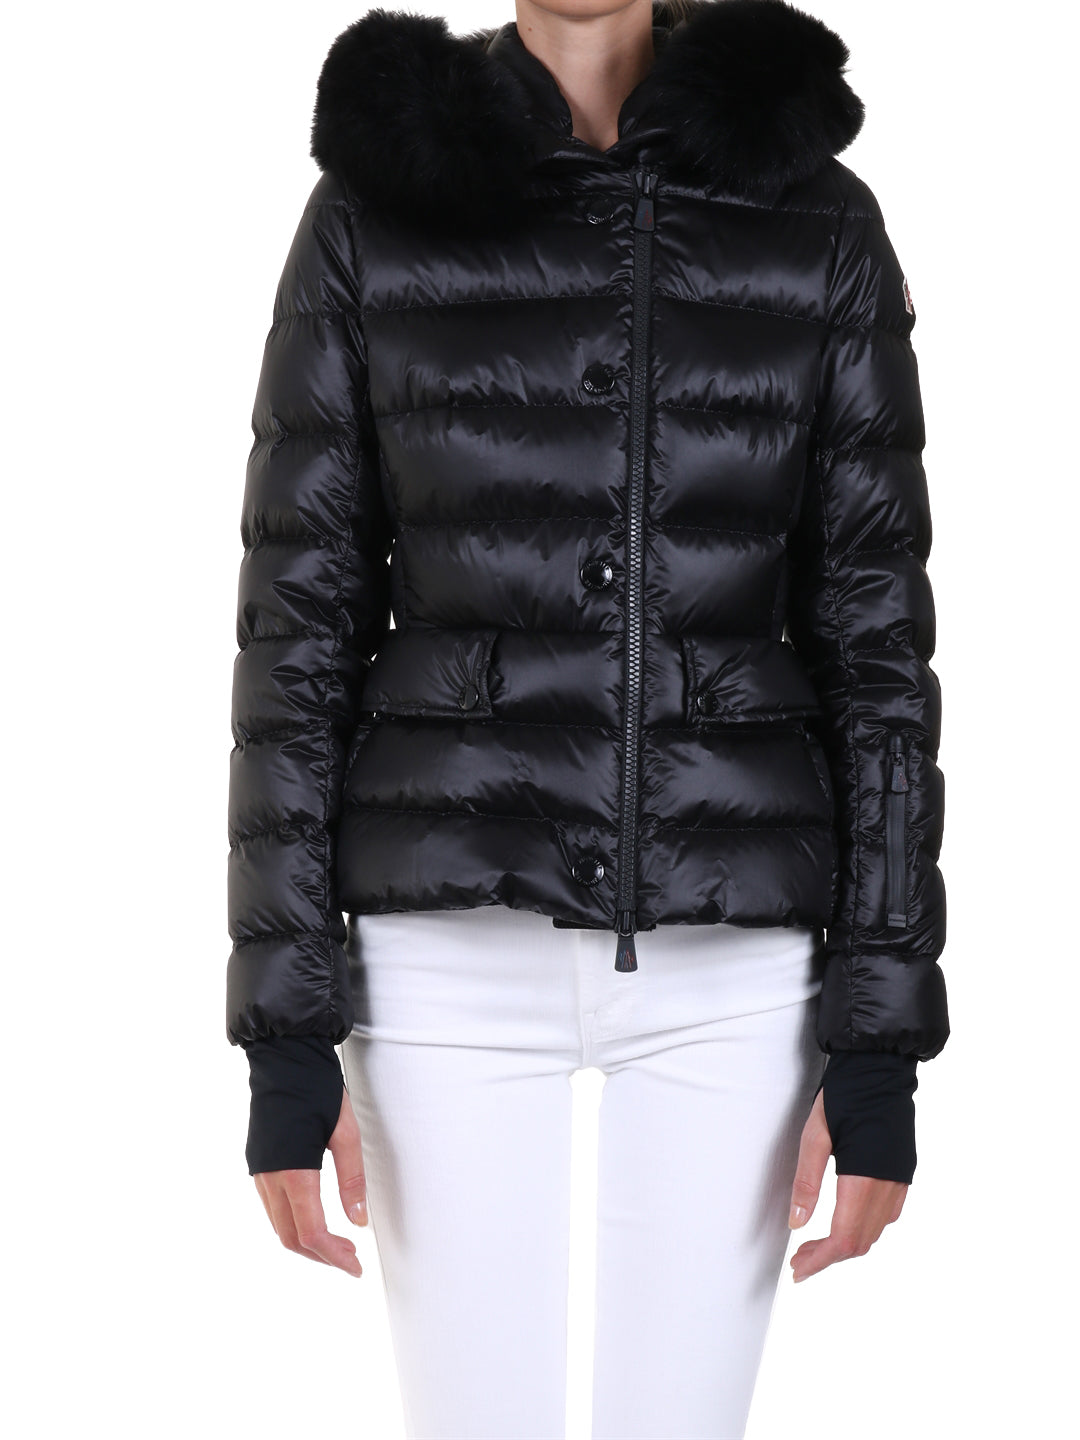 Moncler Grenoble MONCLER GRENOBLE ARMONIQUE DOWN JACKET